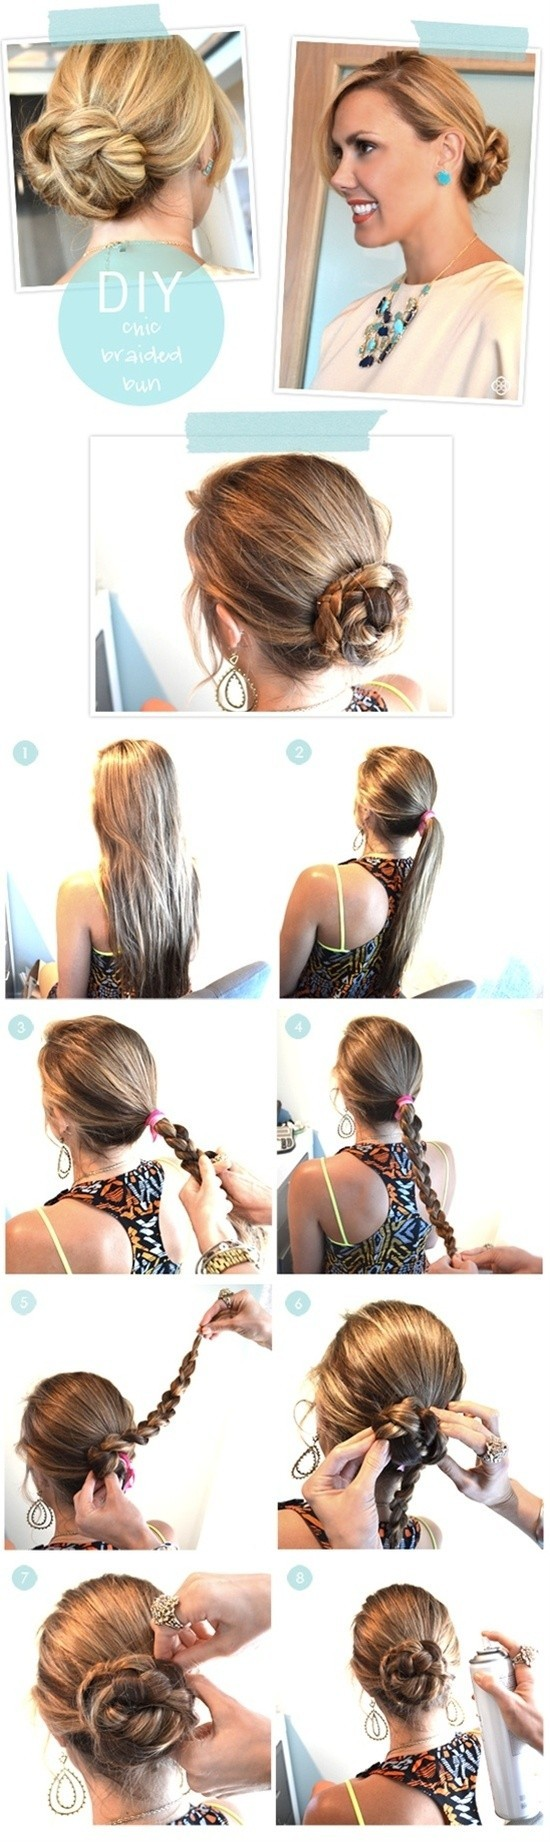 Good Diy Chic Braided Bun Hair Tutorial: Easy Updos For Long Hair